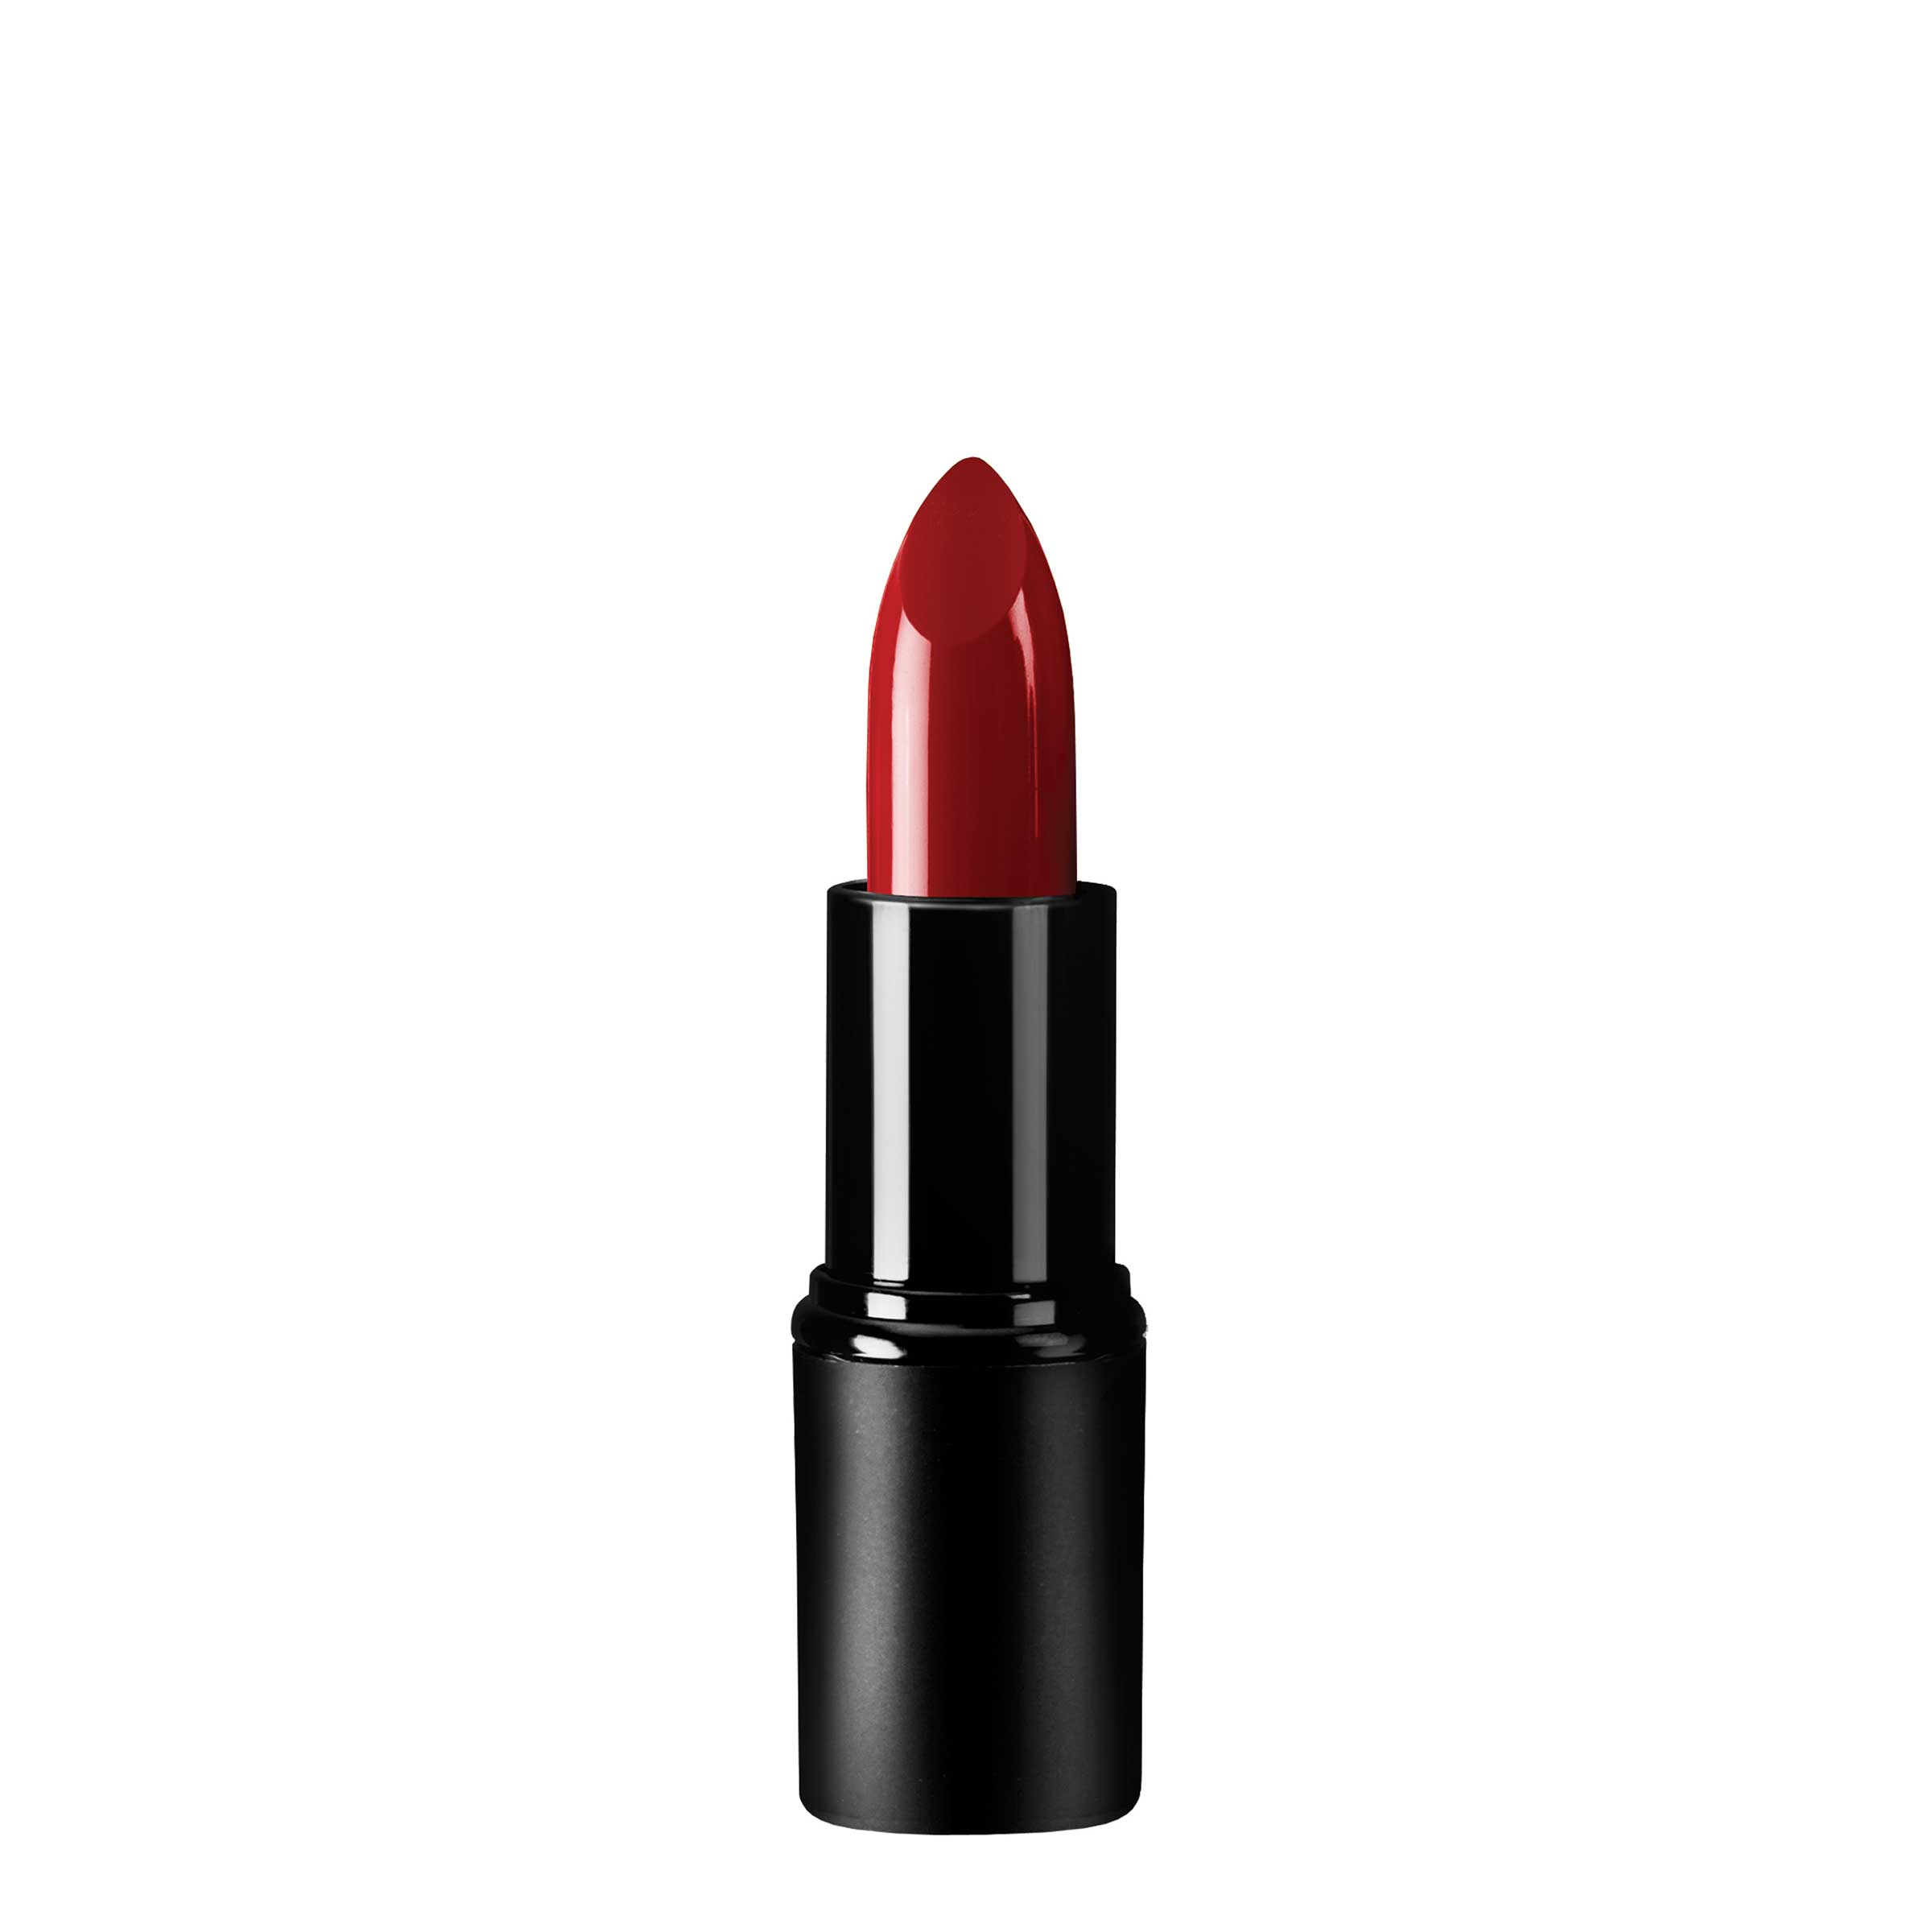 True Colour Lipstick Vixen